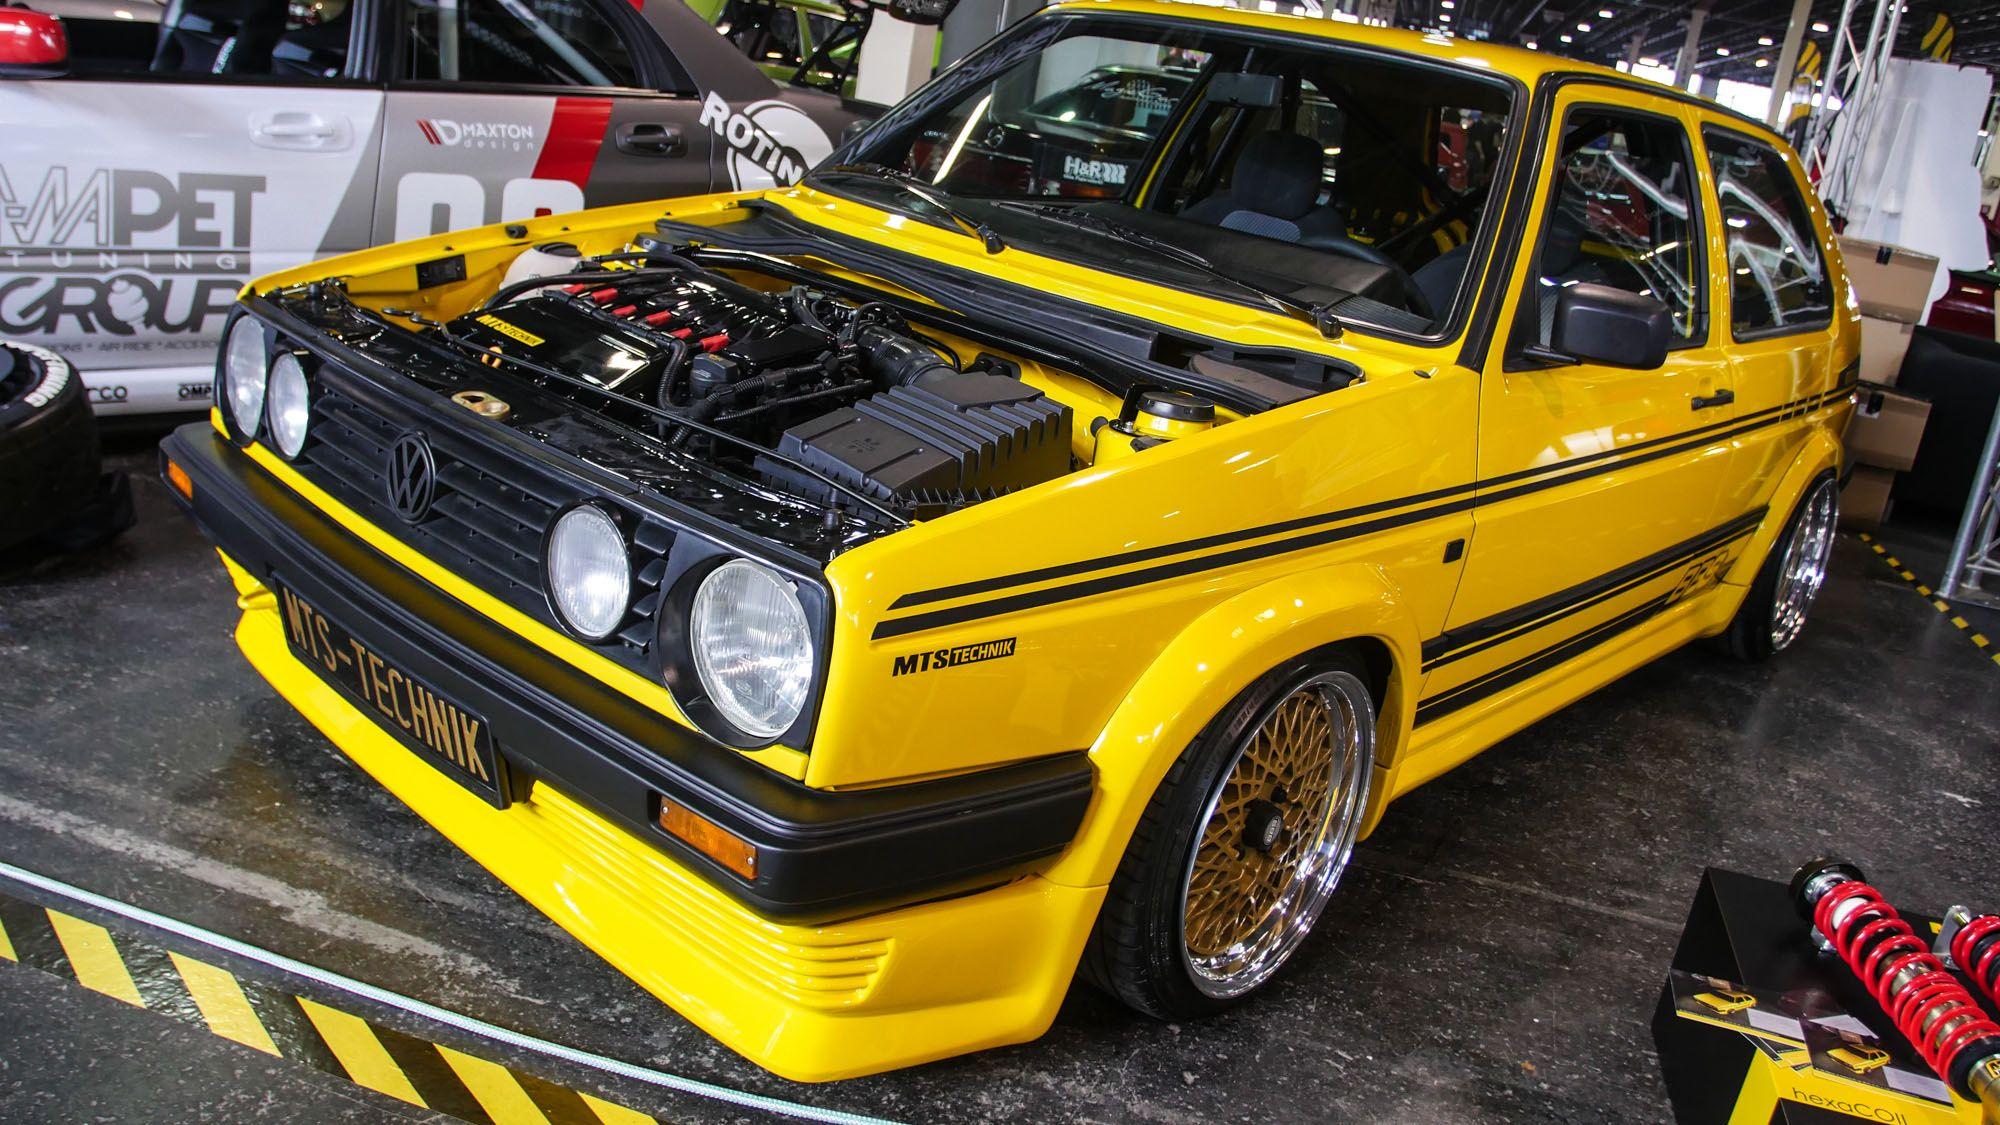 Retro Racer in knalligem Gelb VW Golf II BBS Magazin